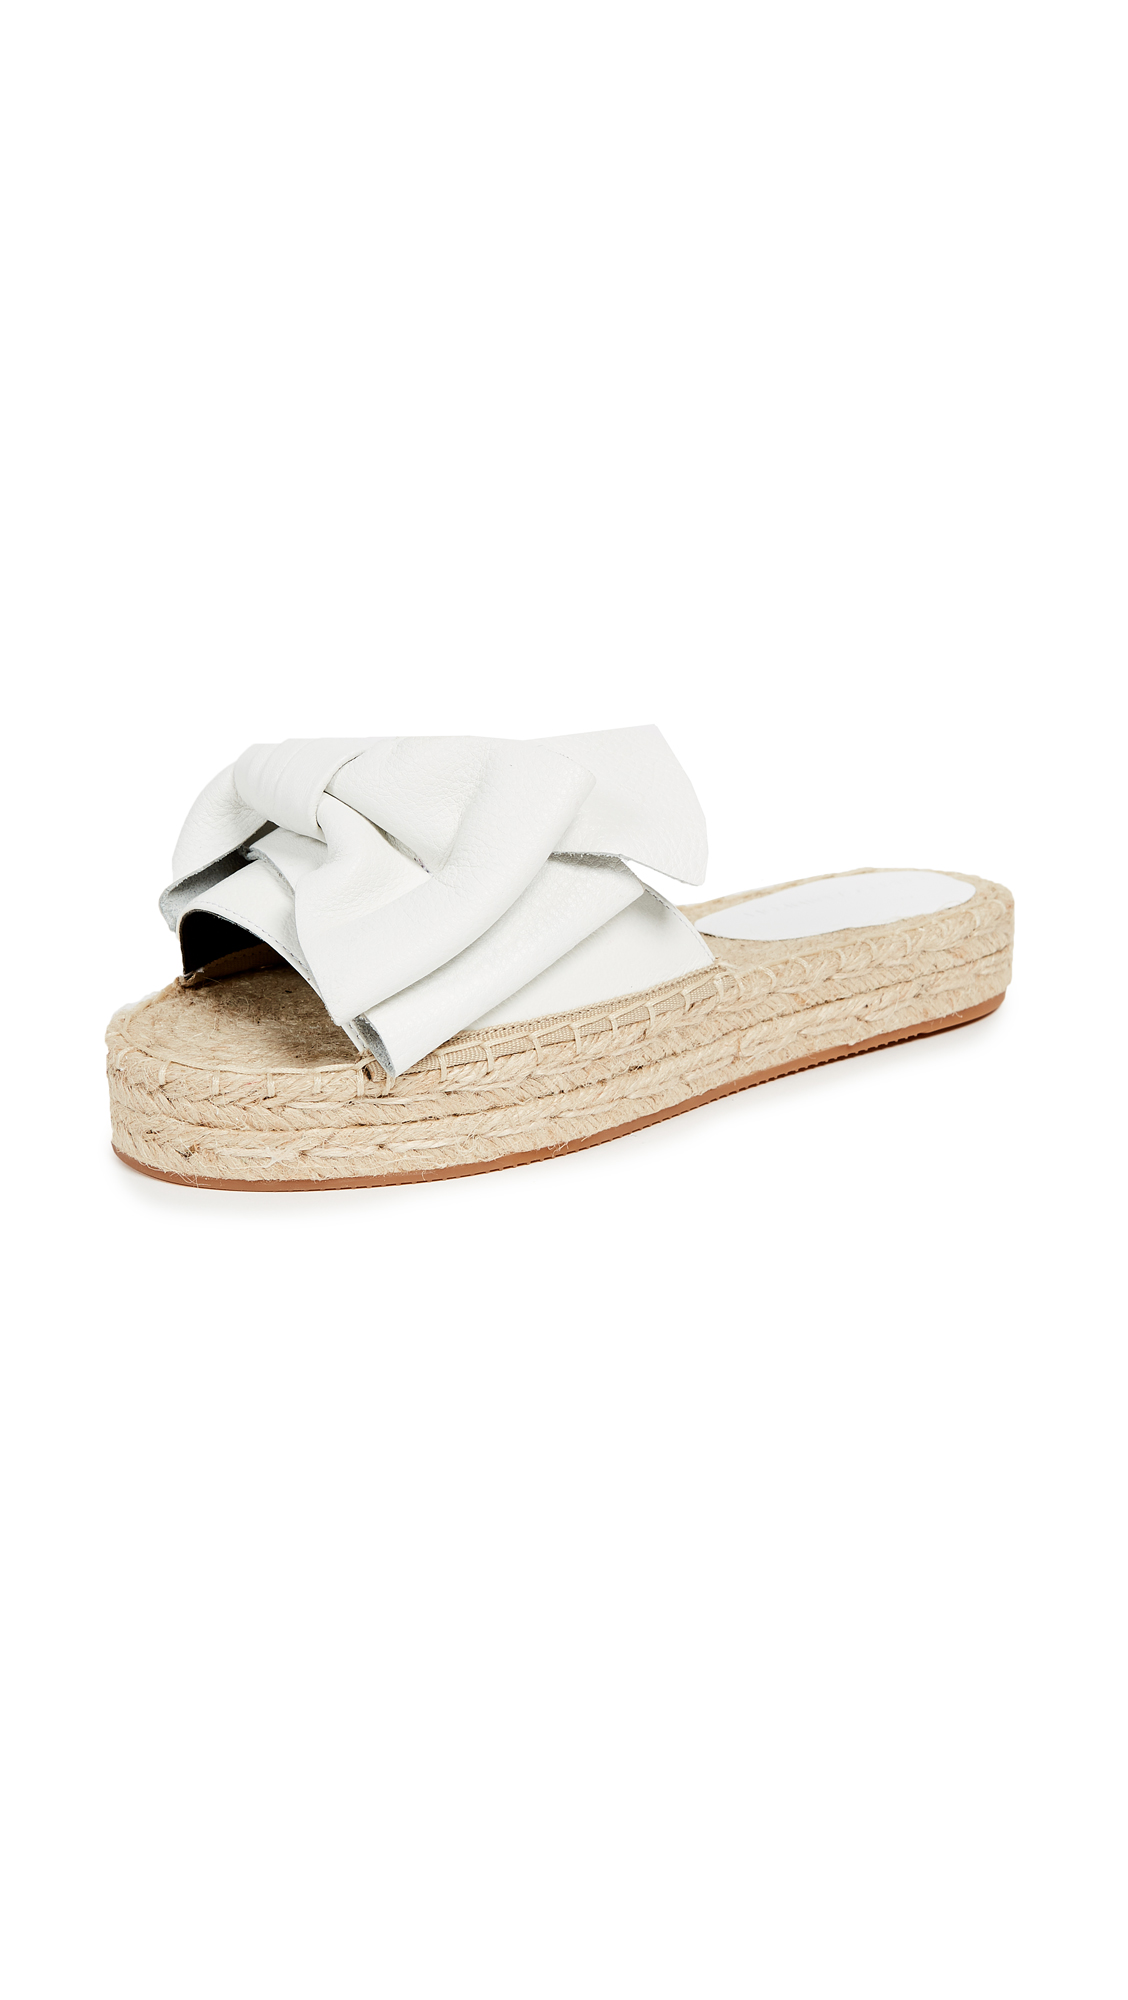 Rebecca Minkoff Giana Slides - Optic White